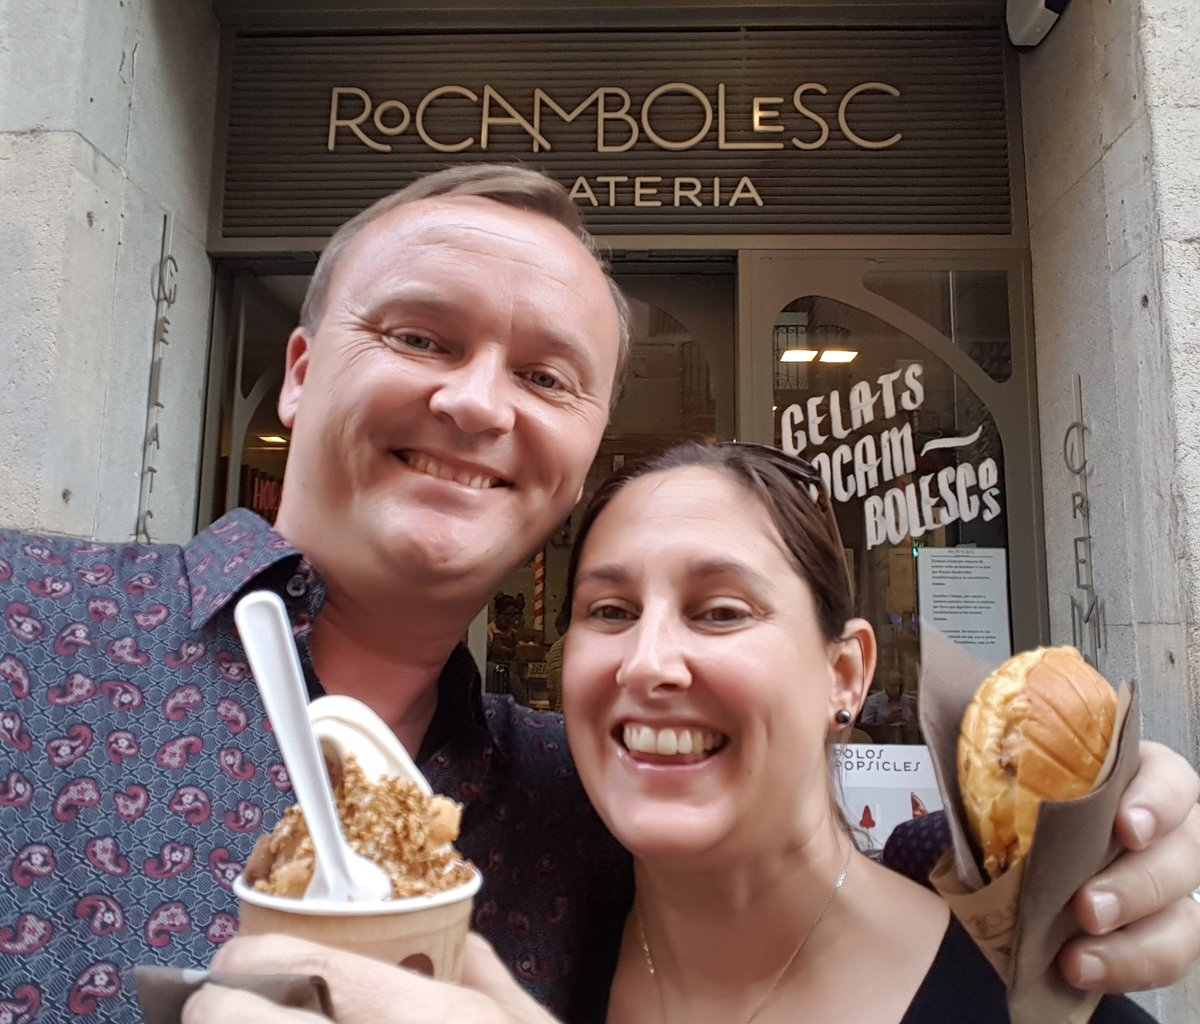 A must stop on my #birthday eating tour of #Girona. @RRRocambolesc for some tasty #icecream.<br>http://pic.twitter.com/GE4Nx2yHnu